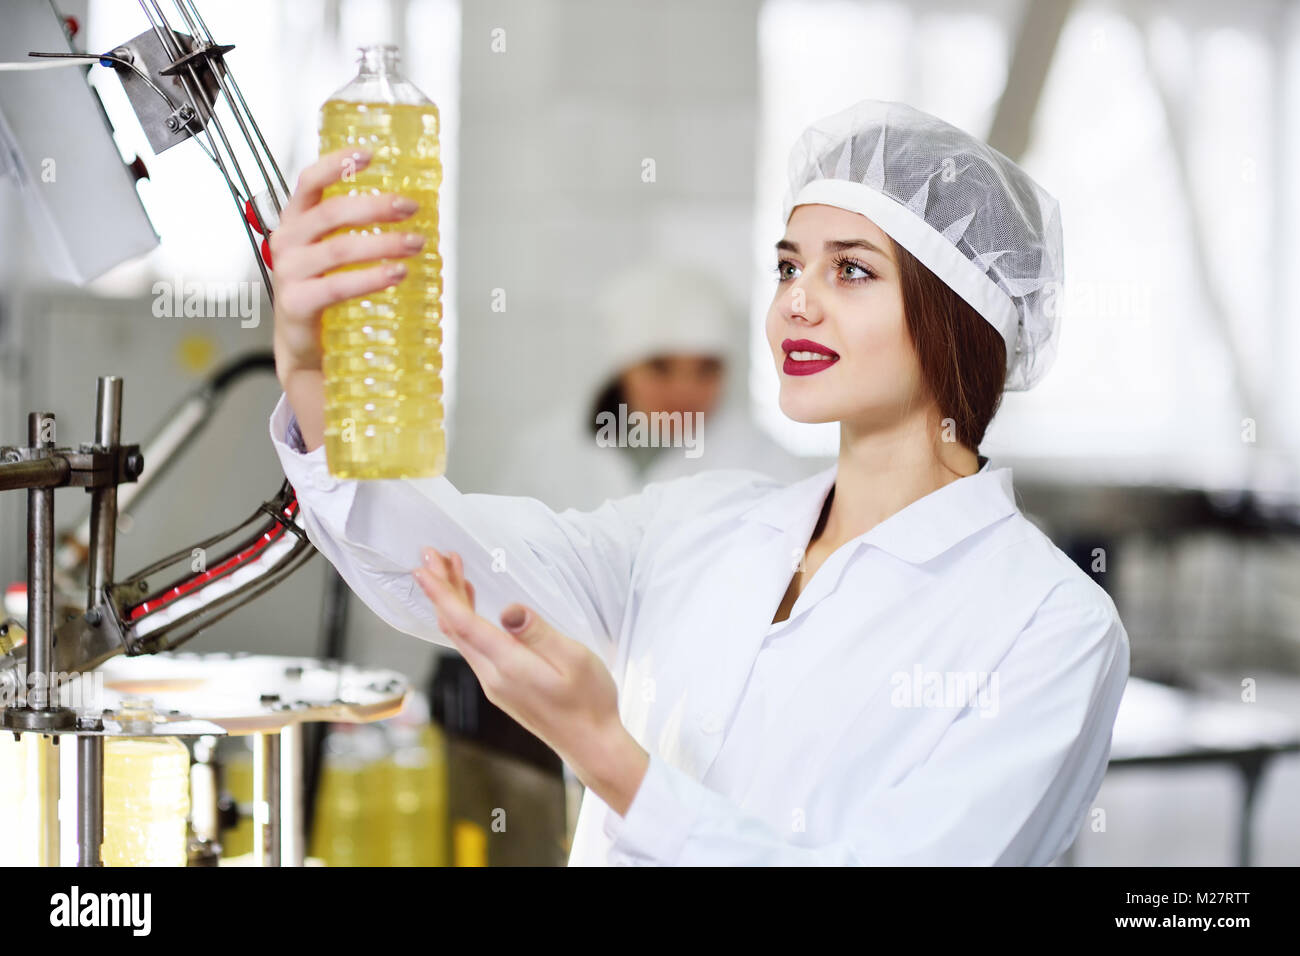 a beautiful young girl in white uniform or a working dressing gown with a bottle of sunflower oil in her hands on - Stock Image